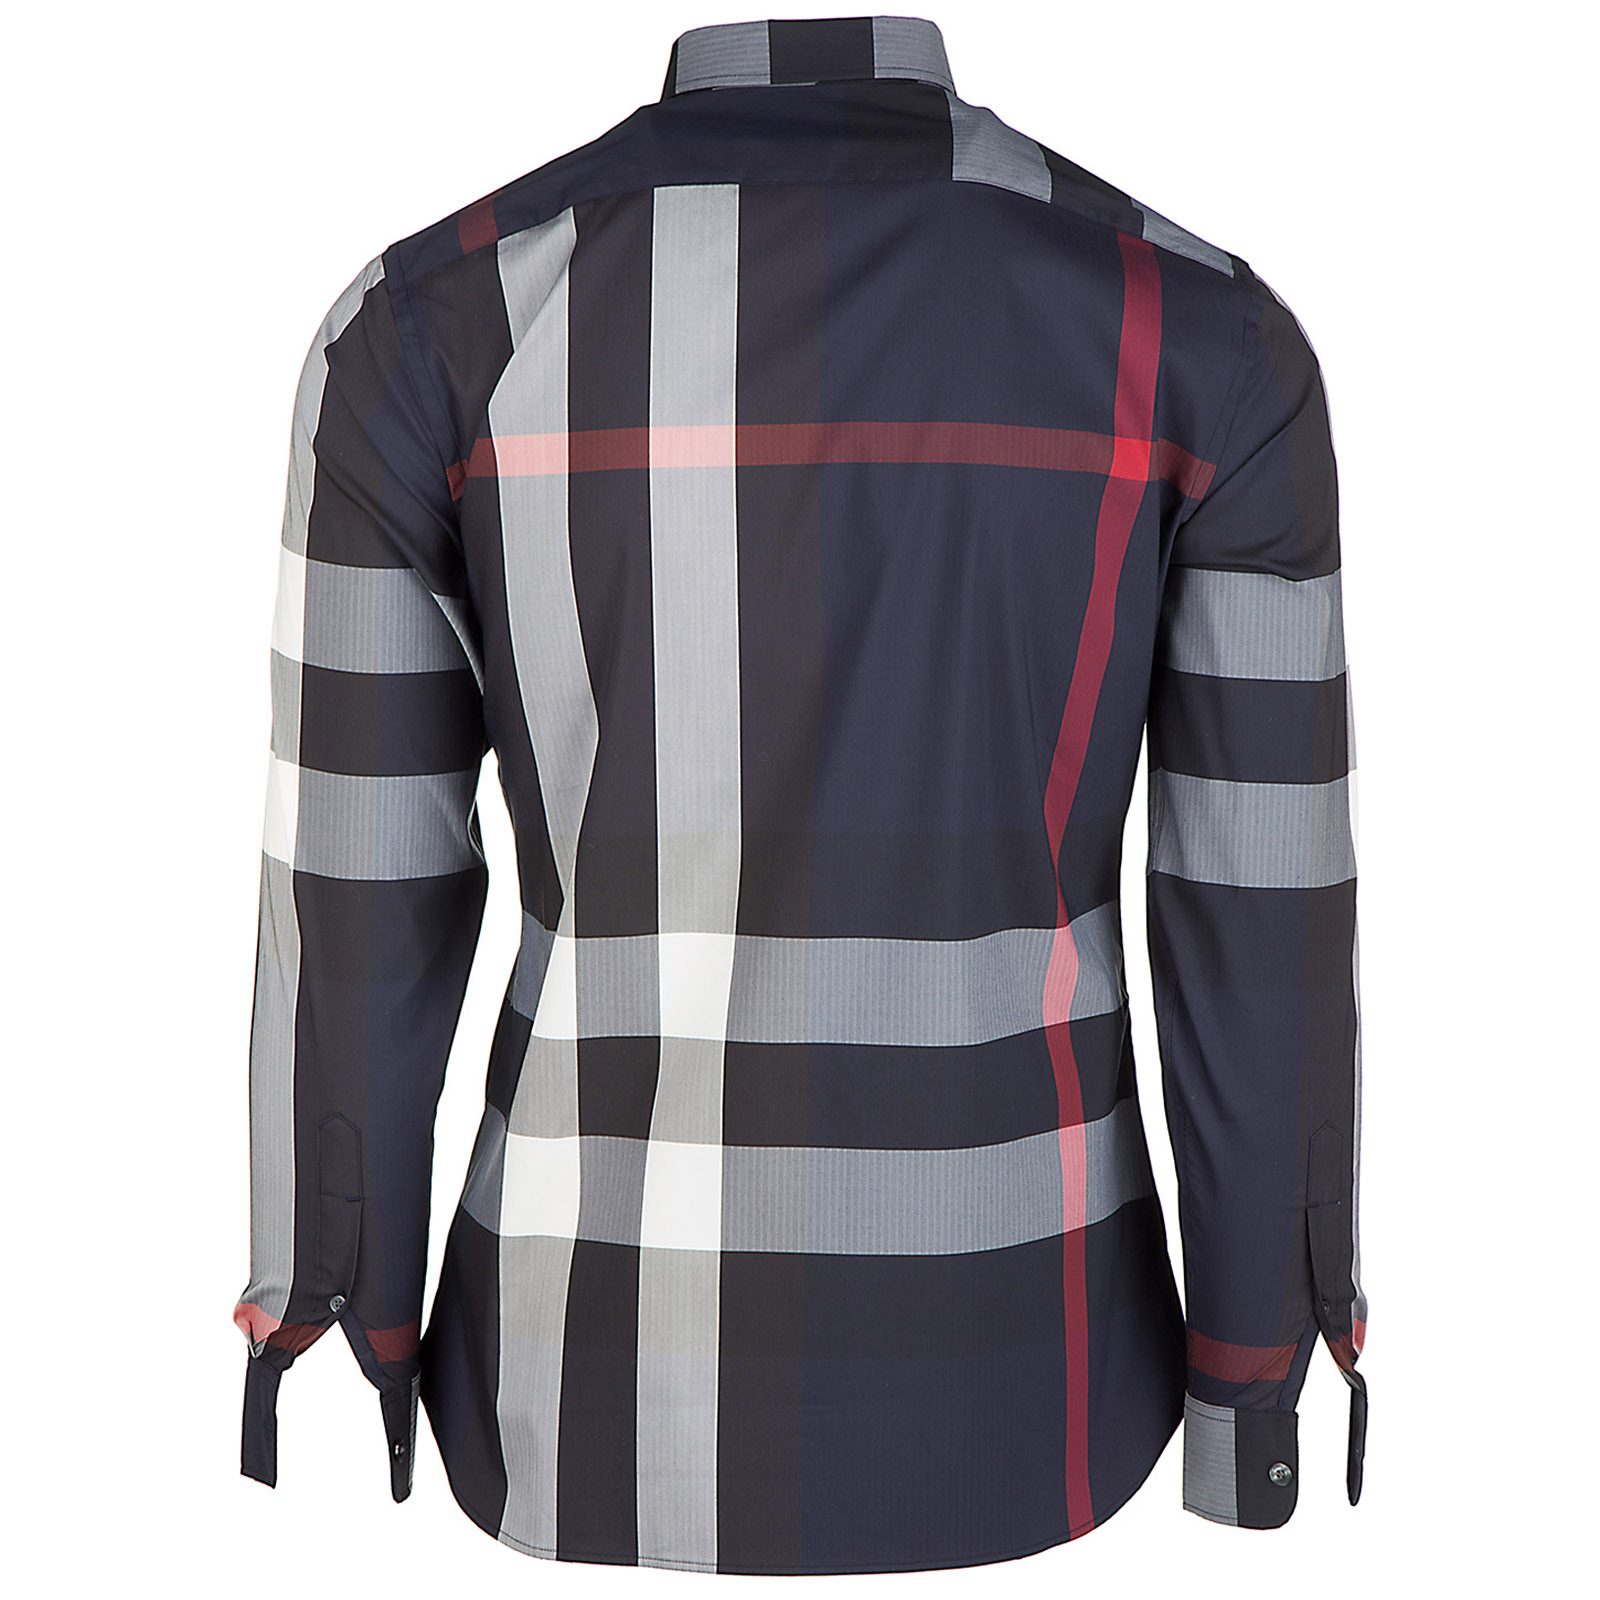 Chemise à manches longues homme thornaby Chemise à manches longues homme  thornaby c420ae49742a